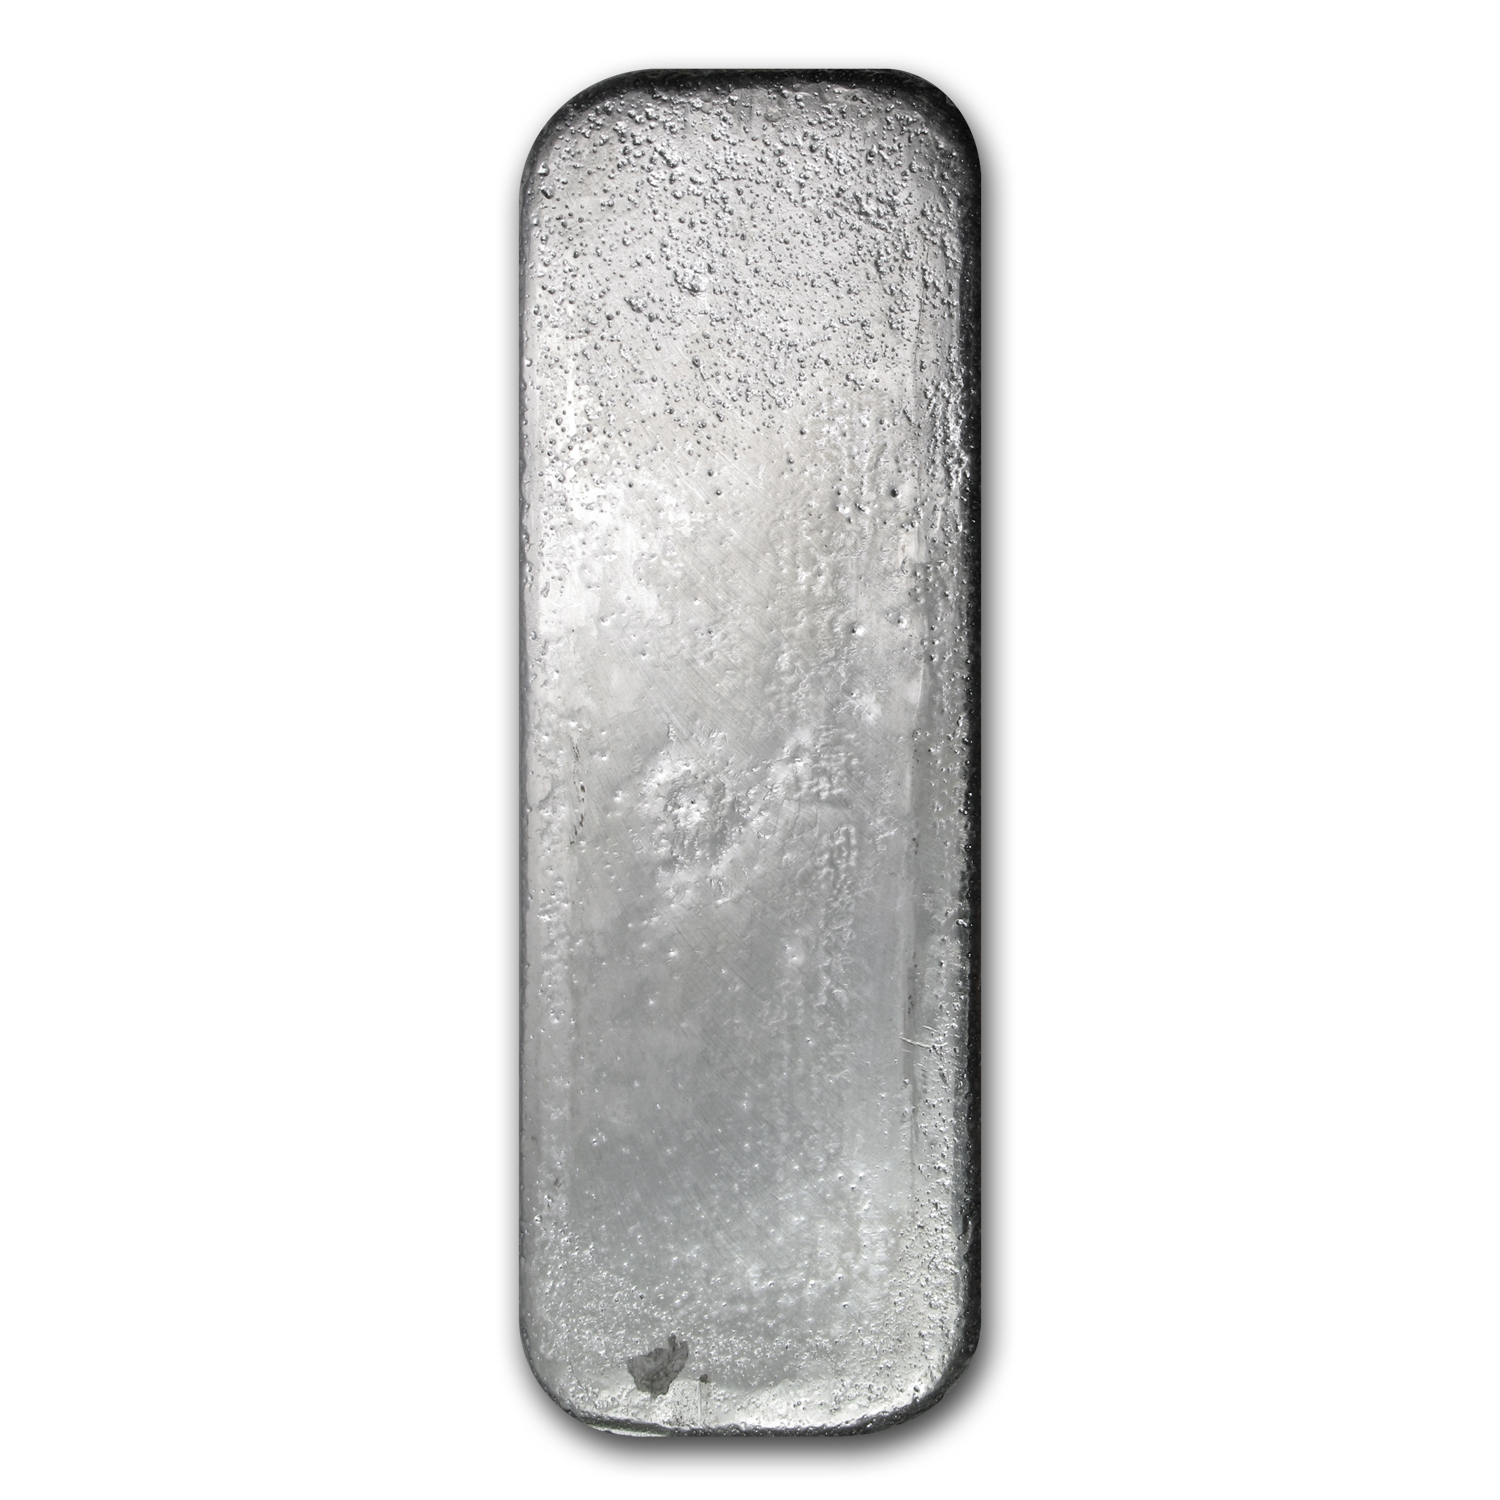 100 oz Silver Bars - Johnson Matthey (Secondary Market)